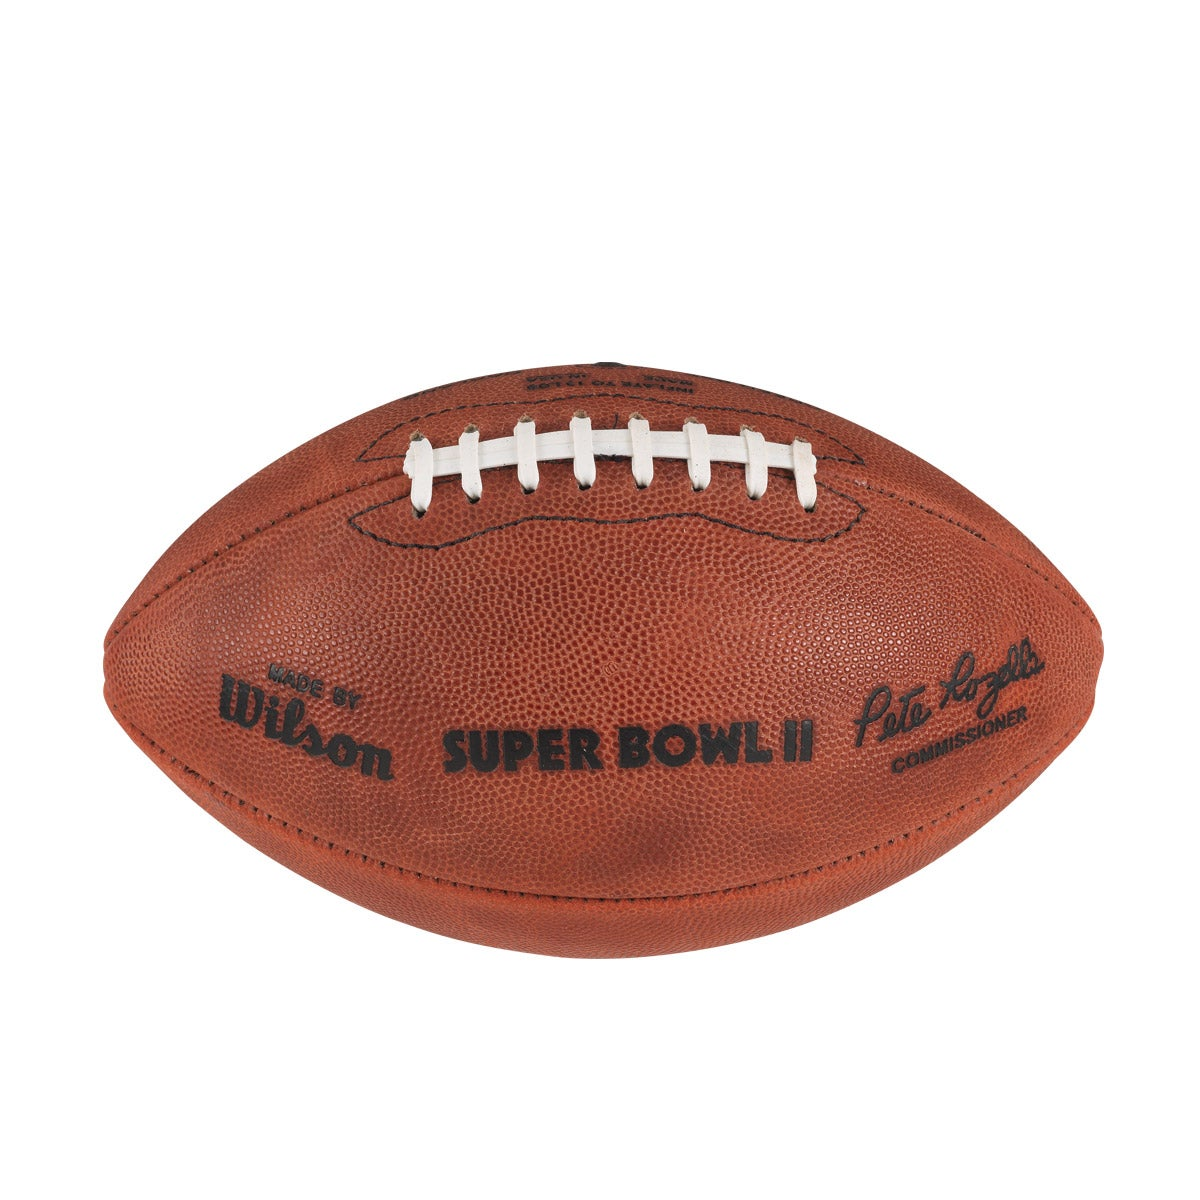 NFL SUPER BOWL II LEATHER GAME FOOTBALL - OFFICIAL (PRO PATTERN)